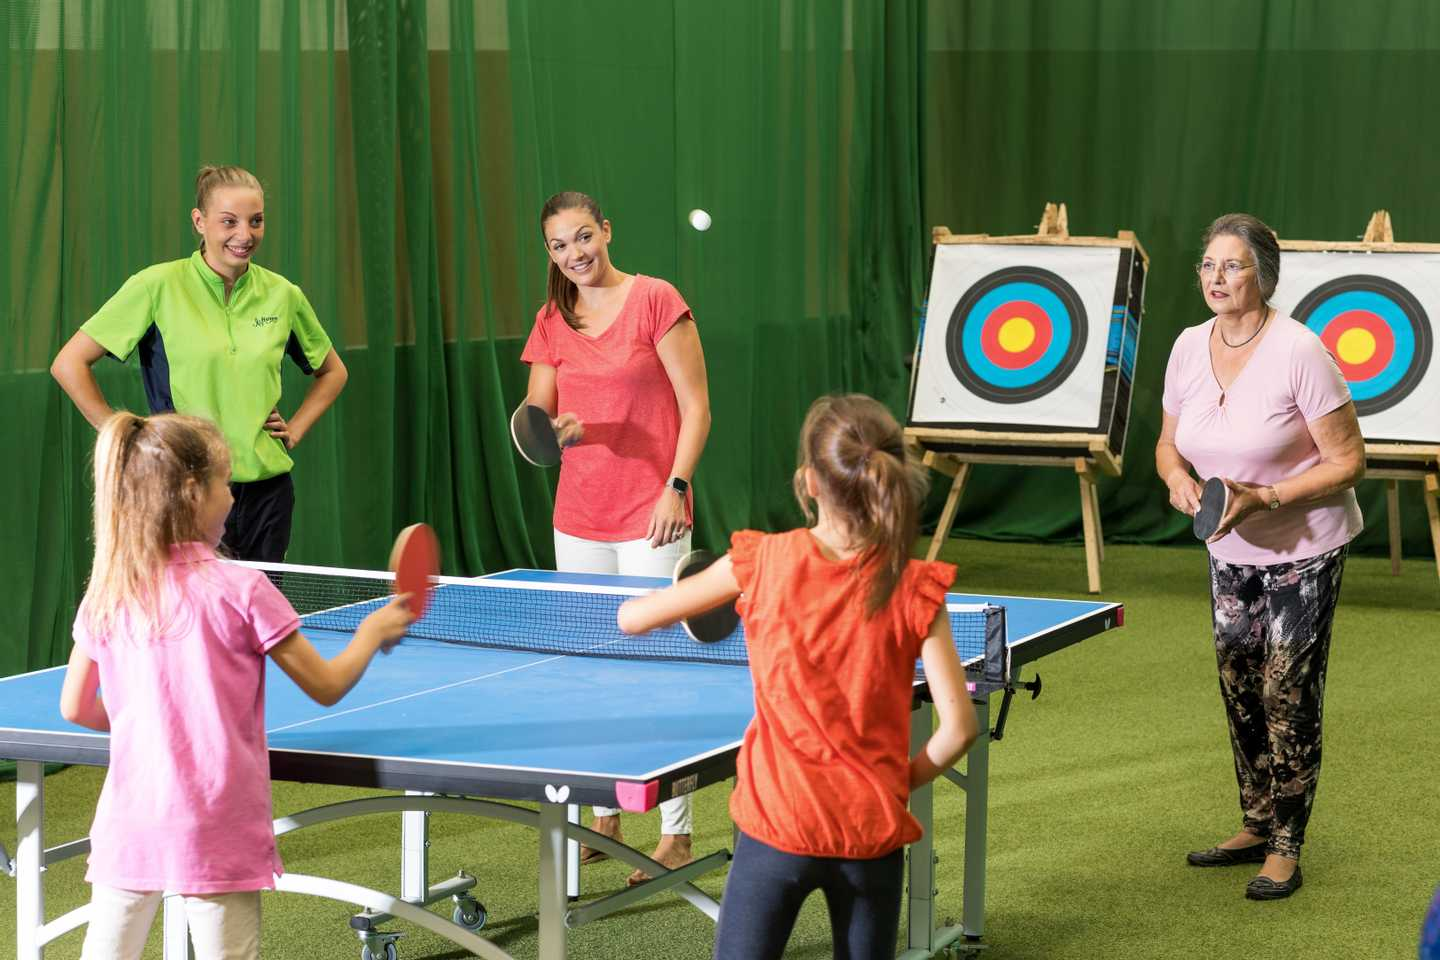 Guests playing table tennis in the all-weather Activity Barn at Thornwick Bay